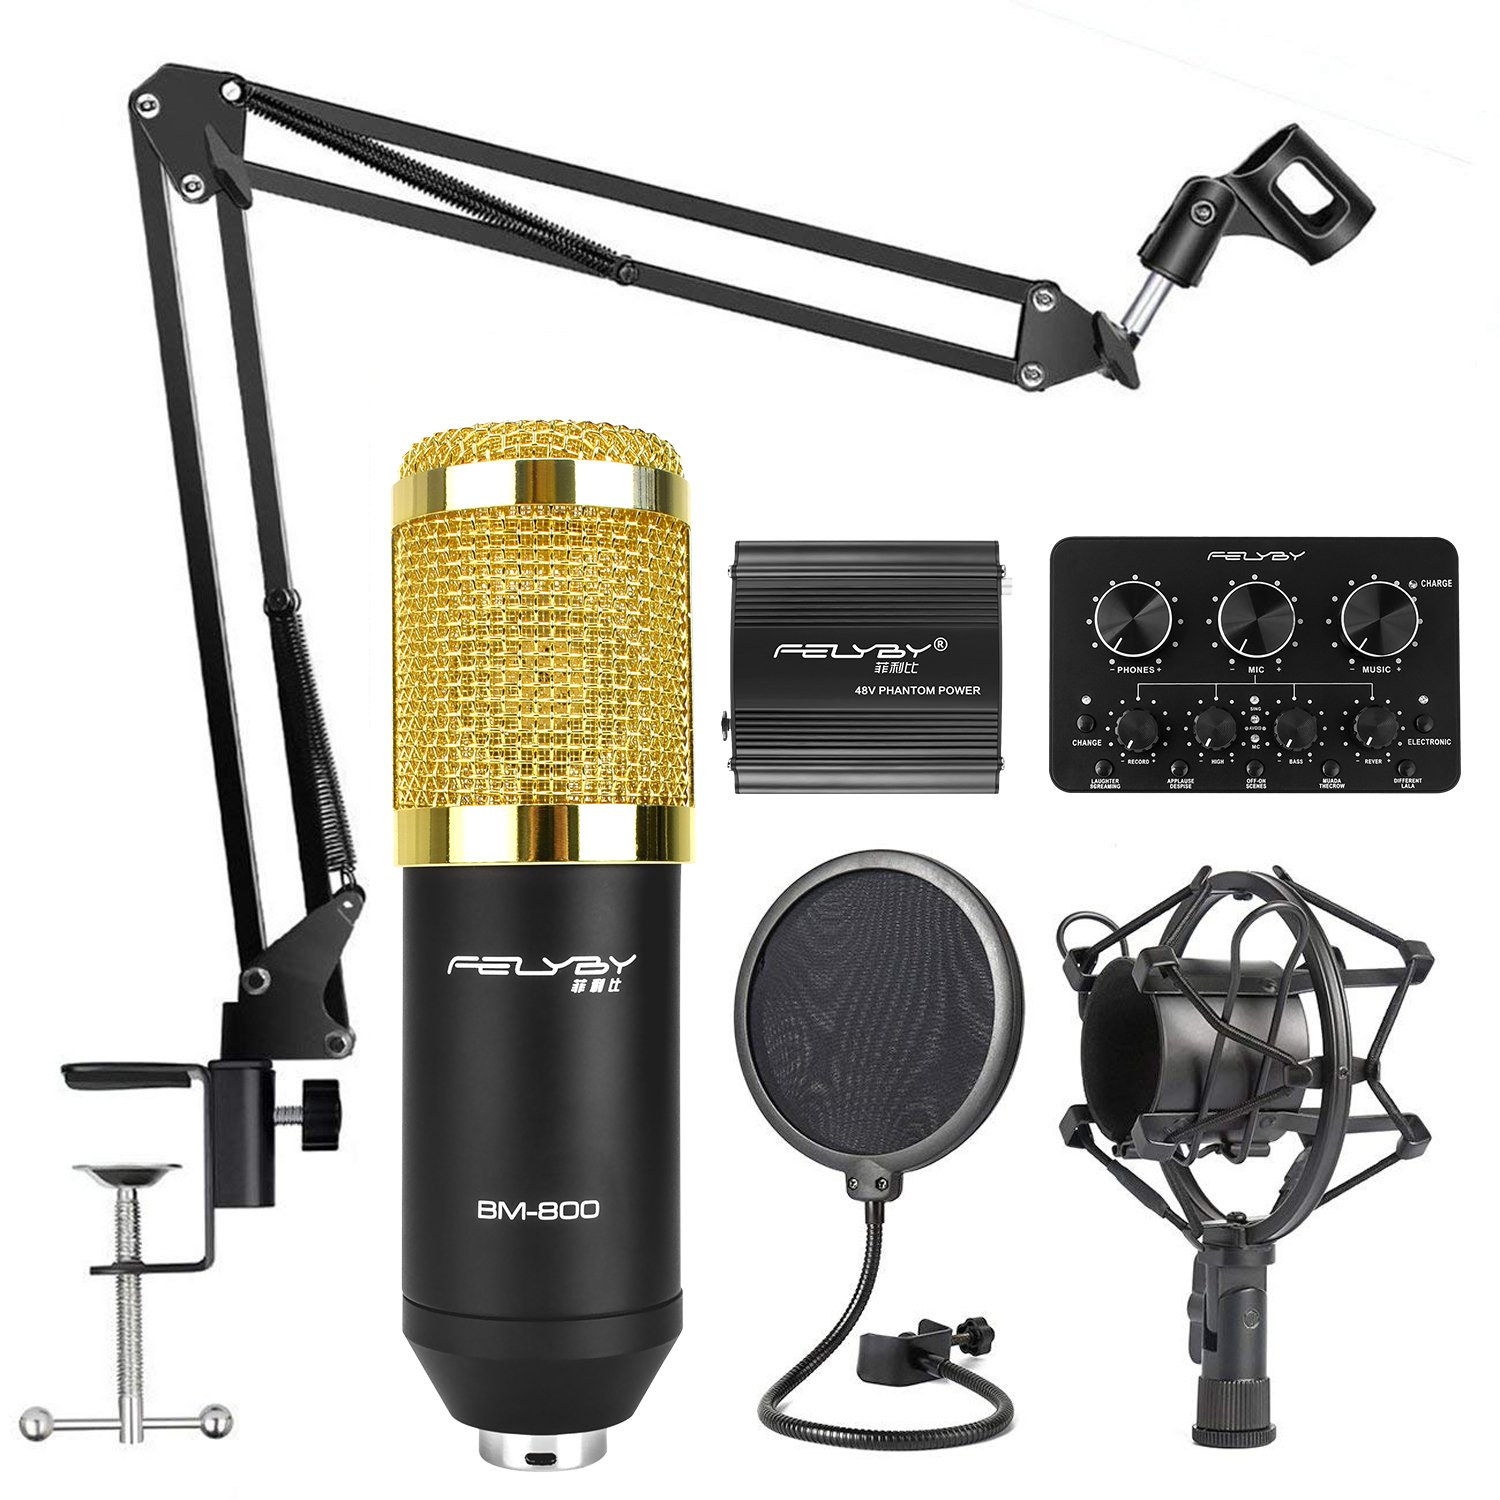 FELYBY Condenser Microphone Bundle, BM-800 Mic Kit with New Version Sound Card, Adjustable Mic Suspension Scissor Arm, Metal Shock Mount and Double-layer Pop Filter for Studio Recording & Broad(Black)